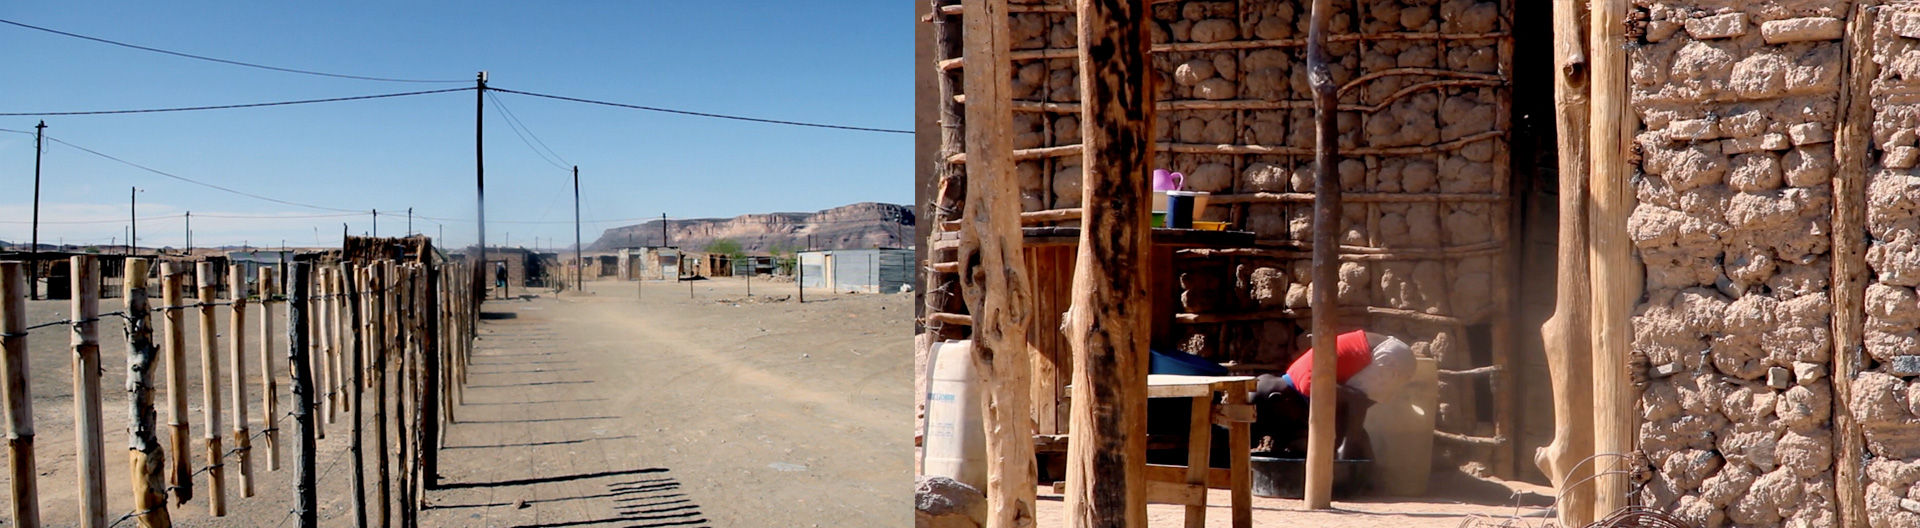 Images depict the resourceful ways that locals in Namibia have constructed fences and homes. Left is an image of a fence constructed from branches and wire; right, view of the gridded tree and mud construction from which homes have been built.